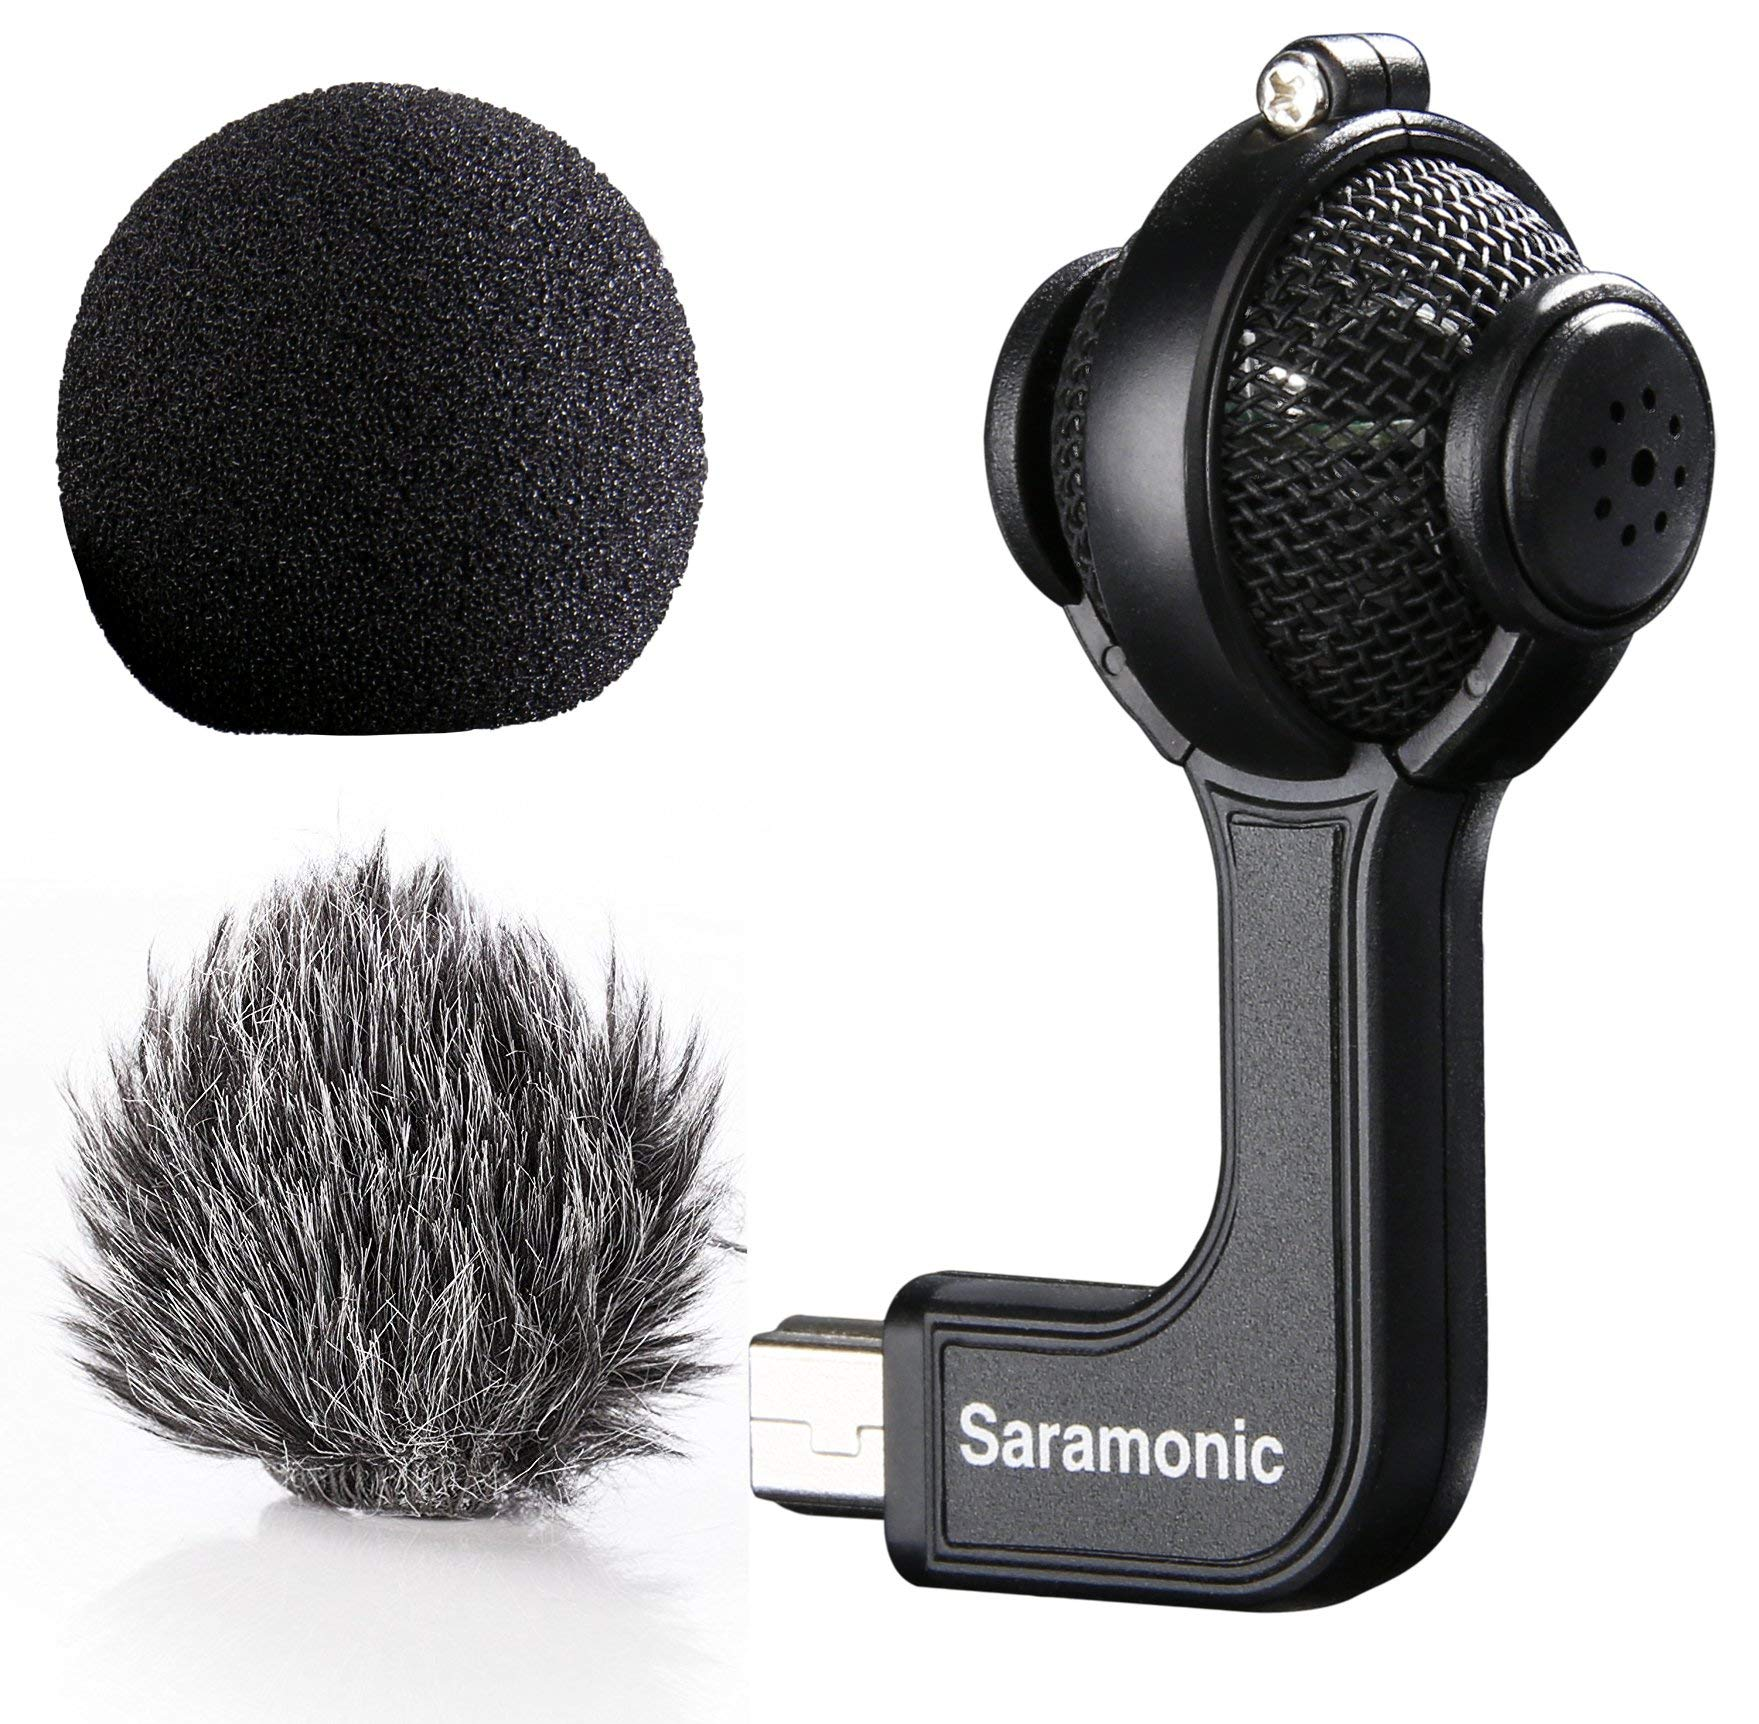 Saramonic G-Mic Stereo Ball Microphone with Foam & Furry Windscreens for GoPro HERO3, HERO3+ and HERO4 by Saramonic